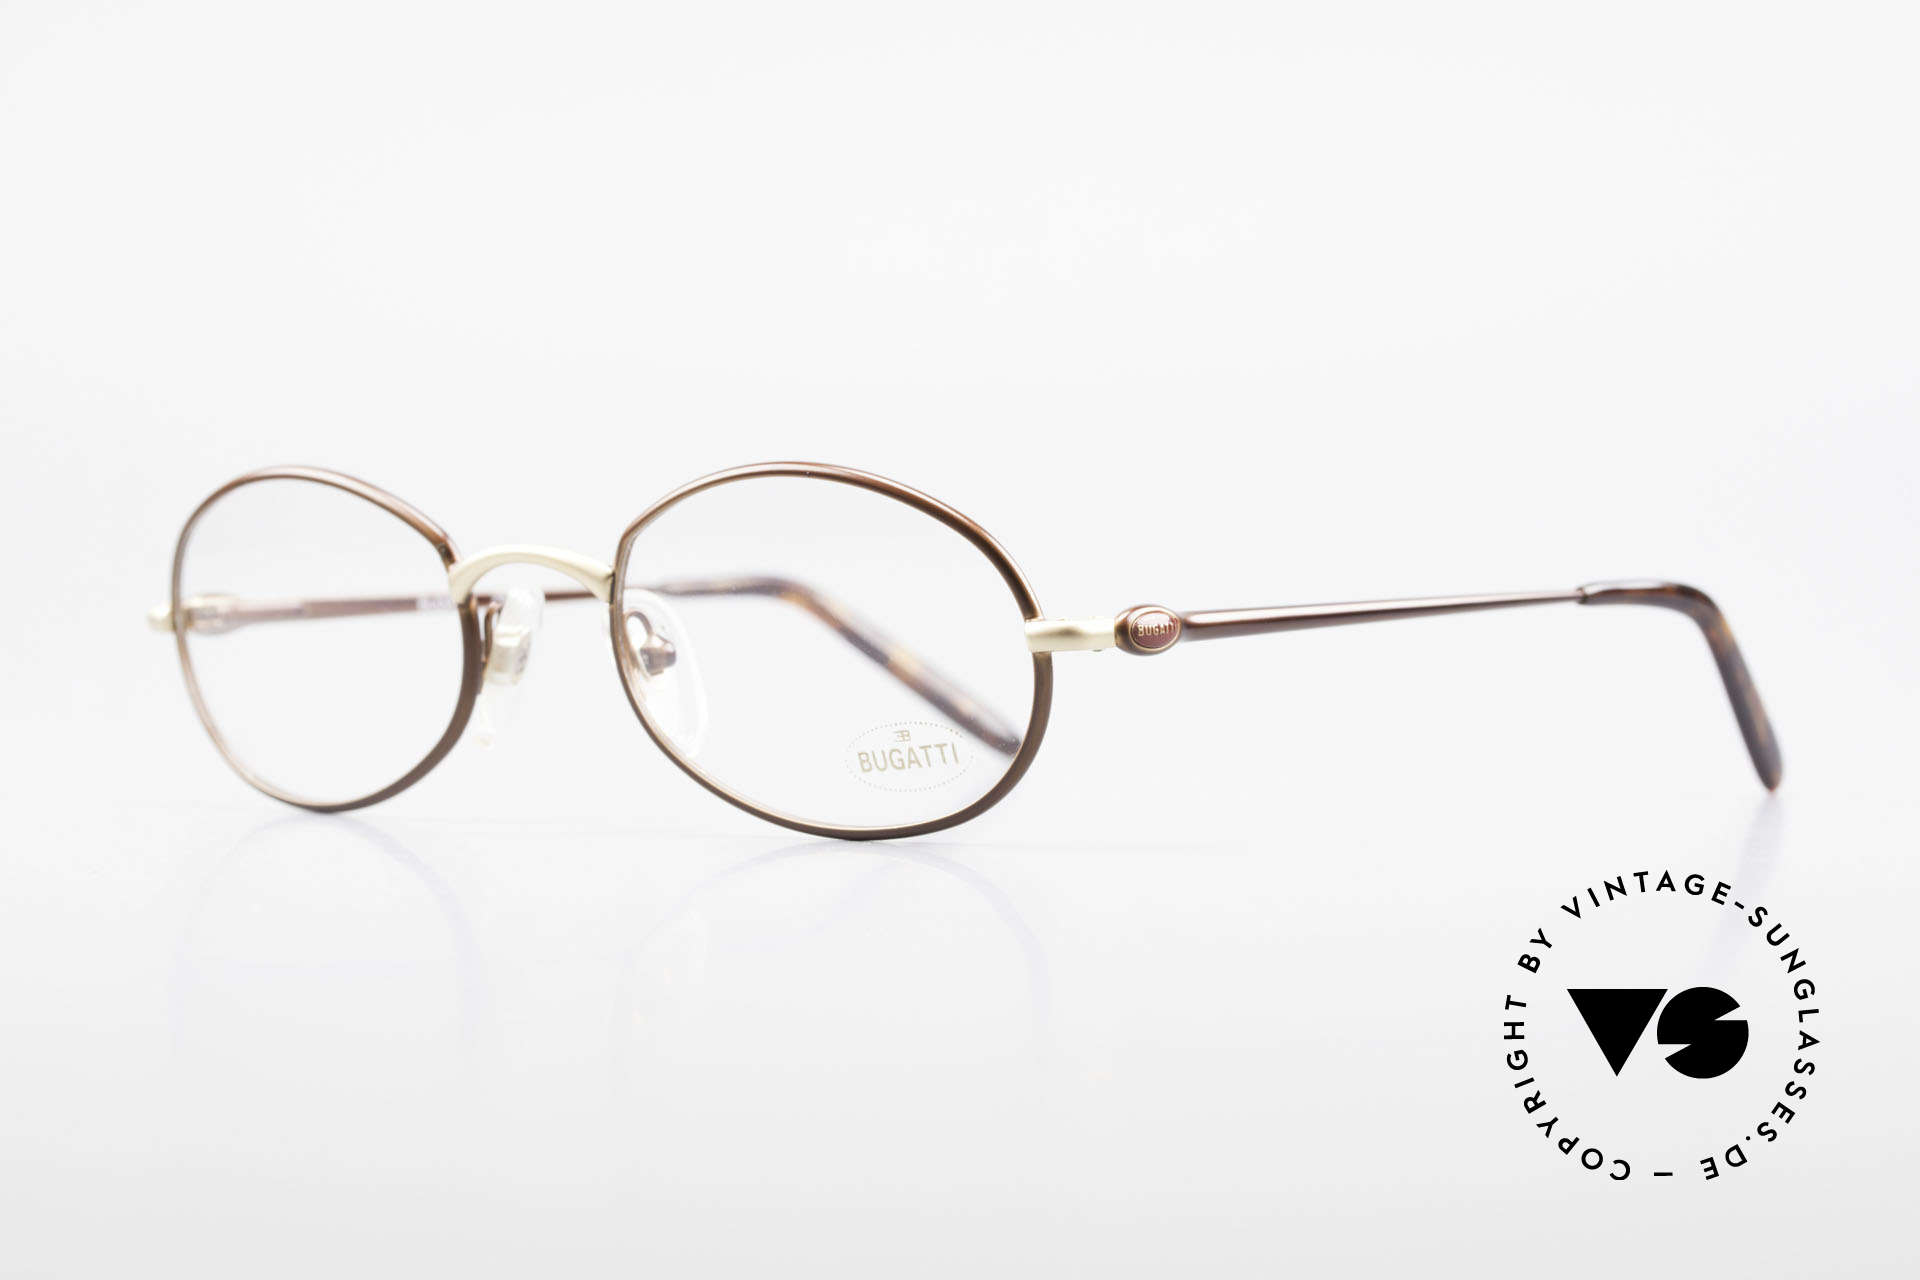 Bugatti 22369 Rare Oval 90's Vintage Frame, 1st class comfort due to spring temples (TOP quality), Made for Men and Women